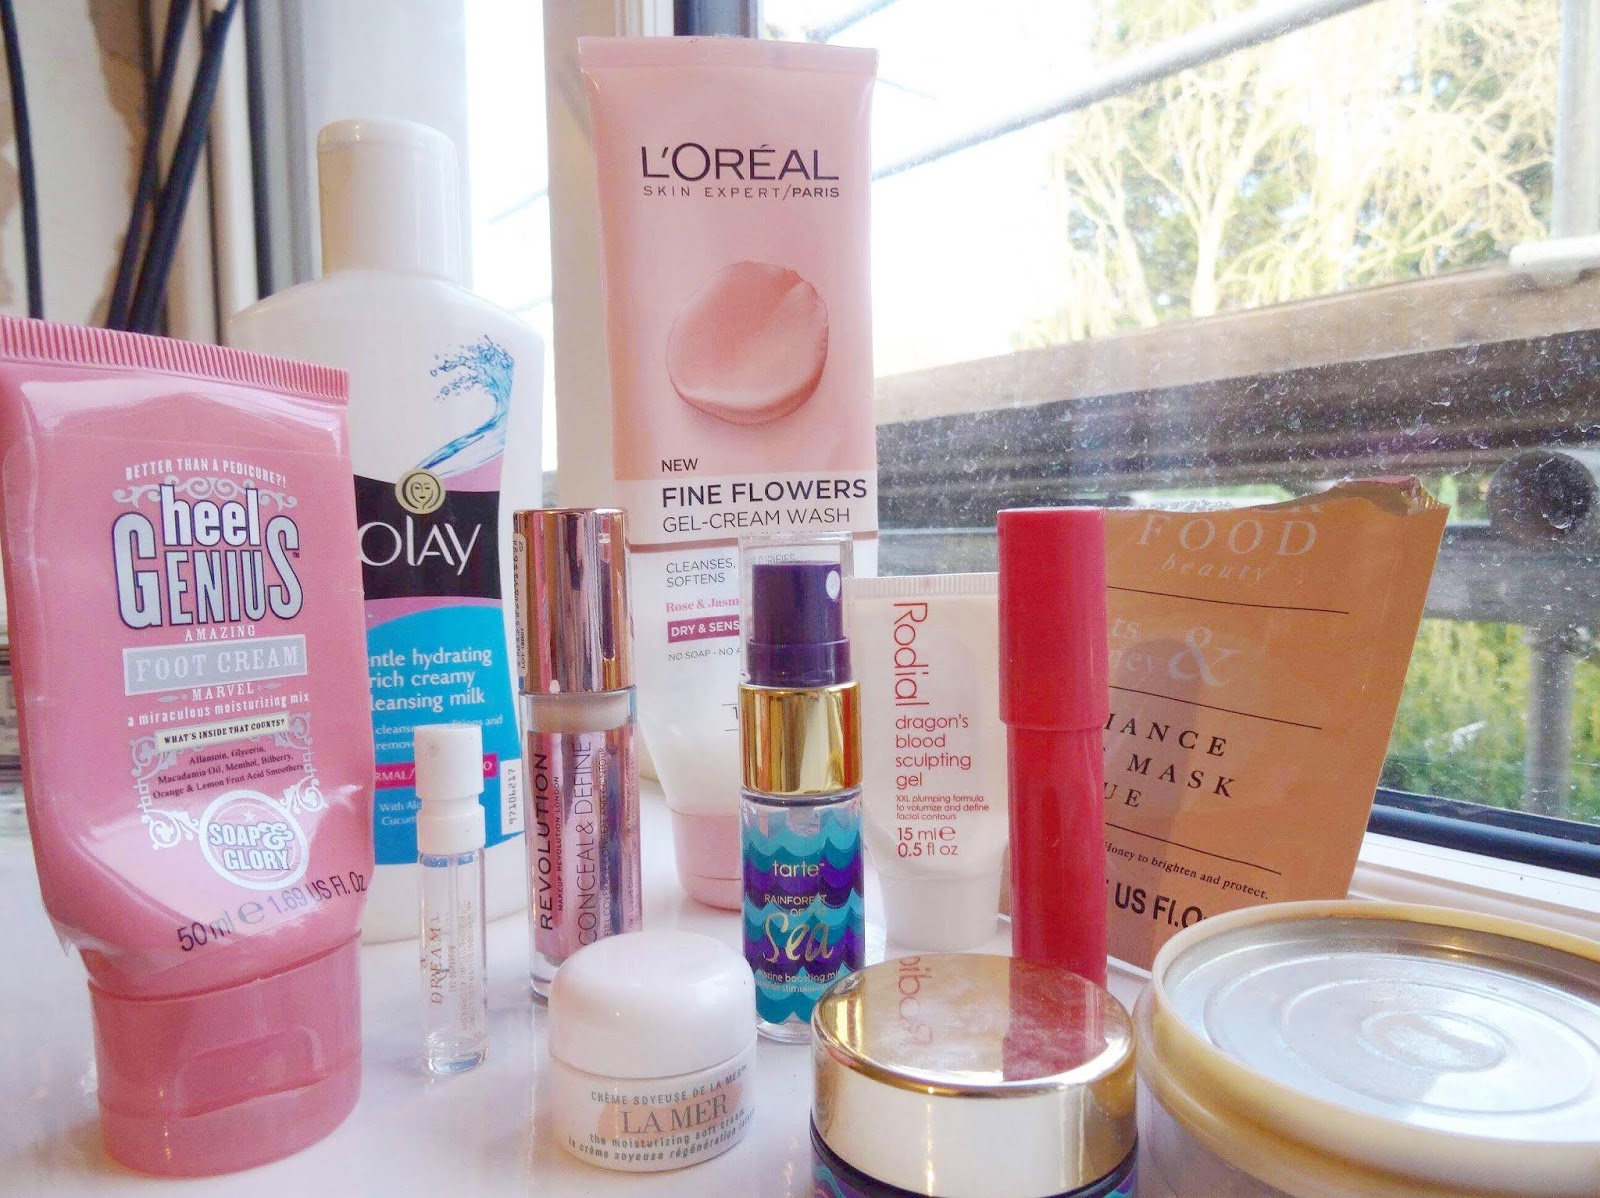 Product empties - my thoughts on these products